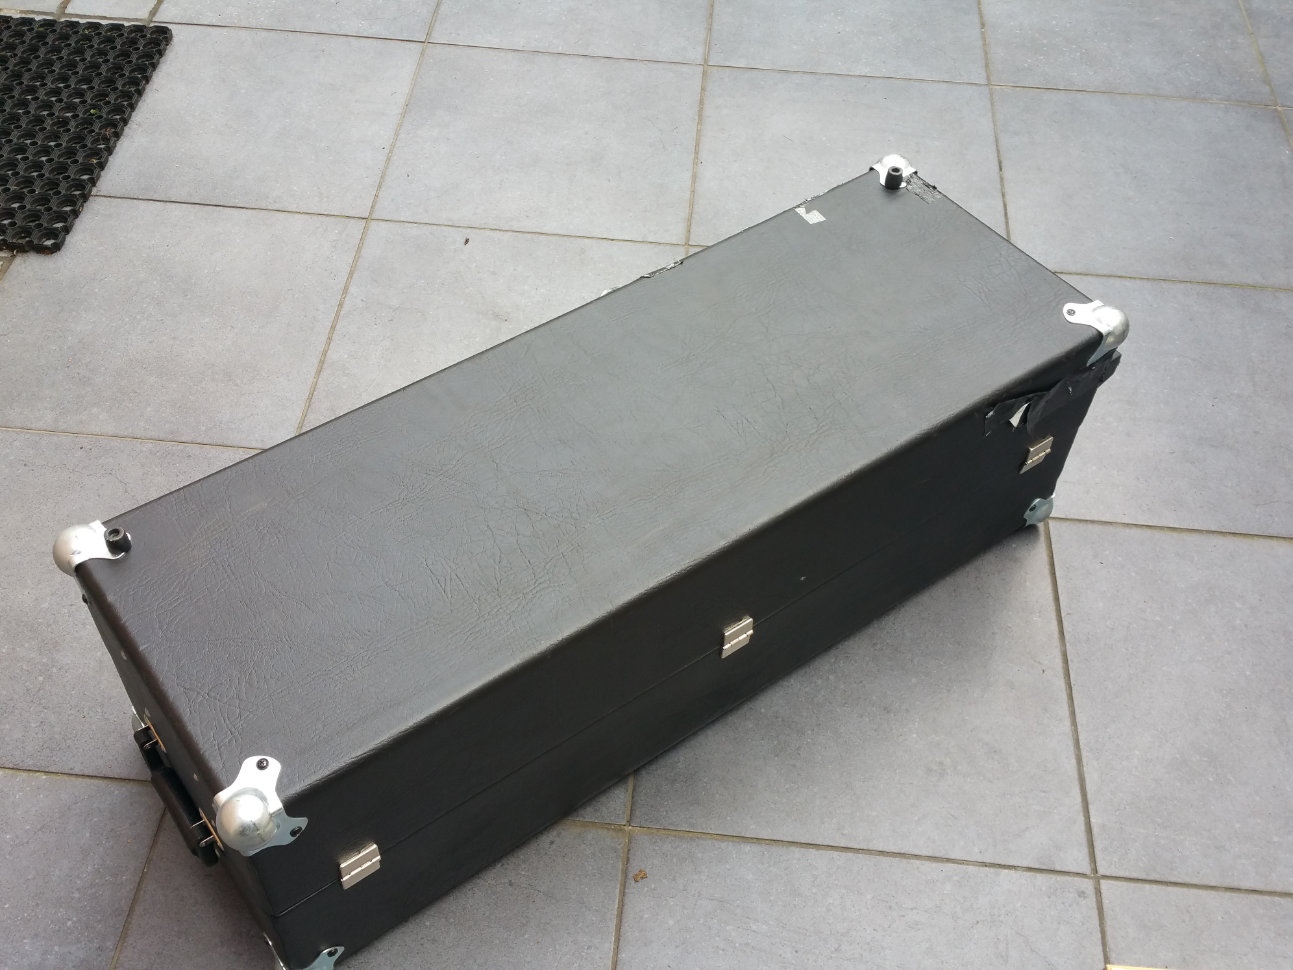 Paetzold-Kunath-SUBcontrabass-recorders-for-sale-com-04